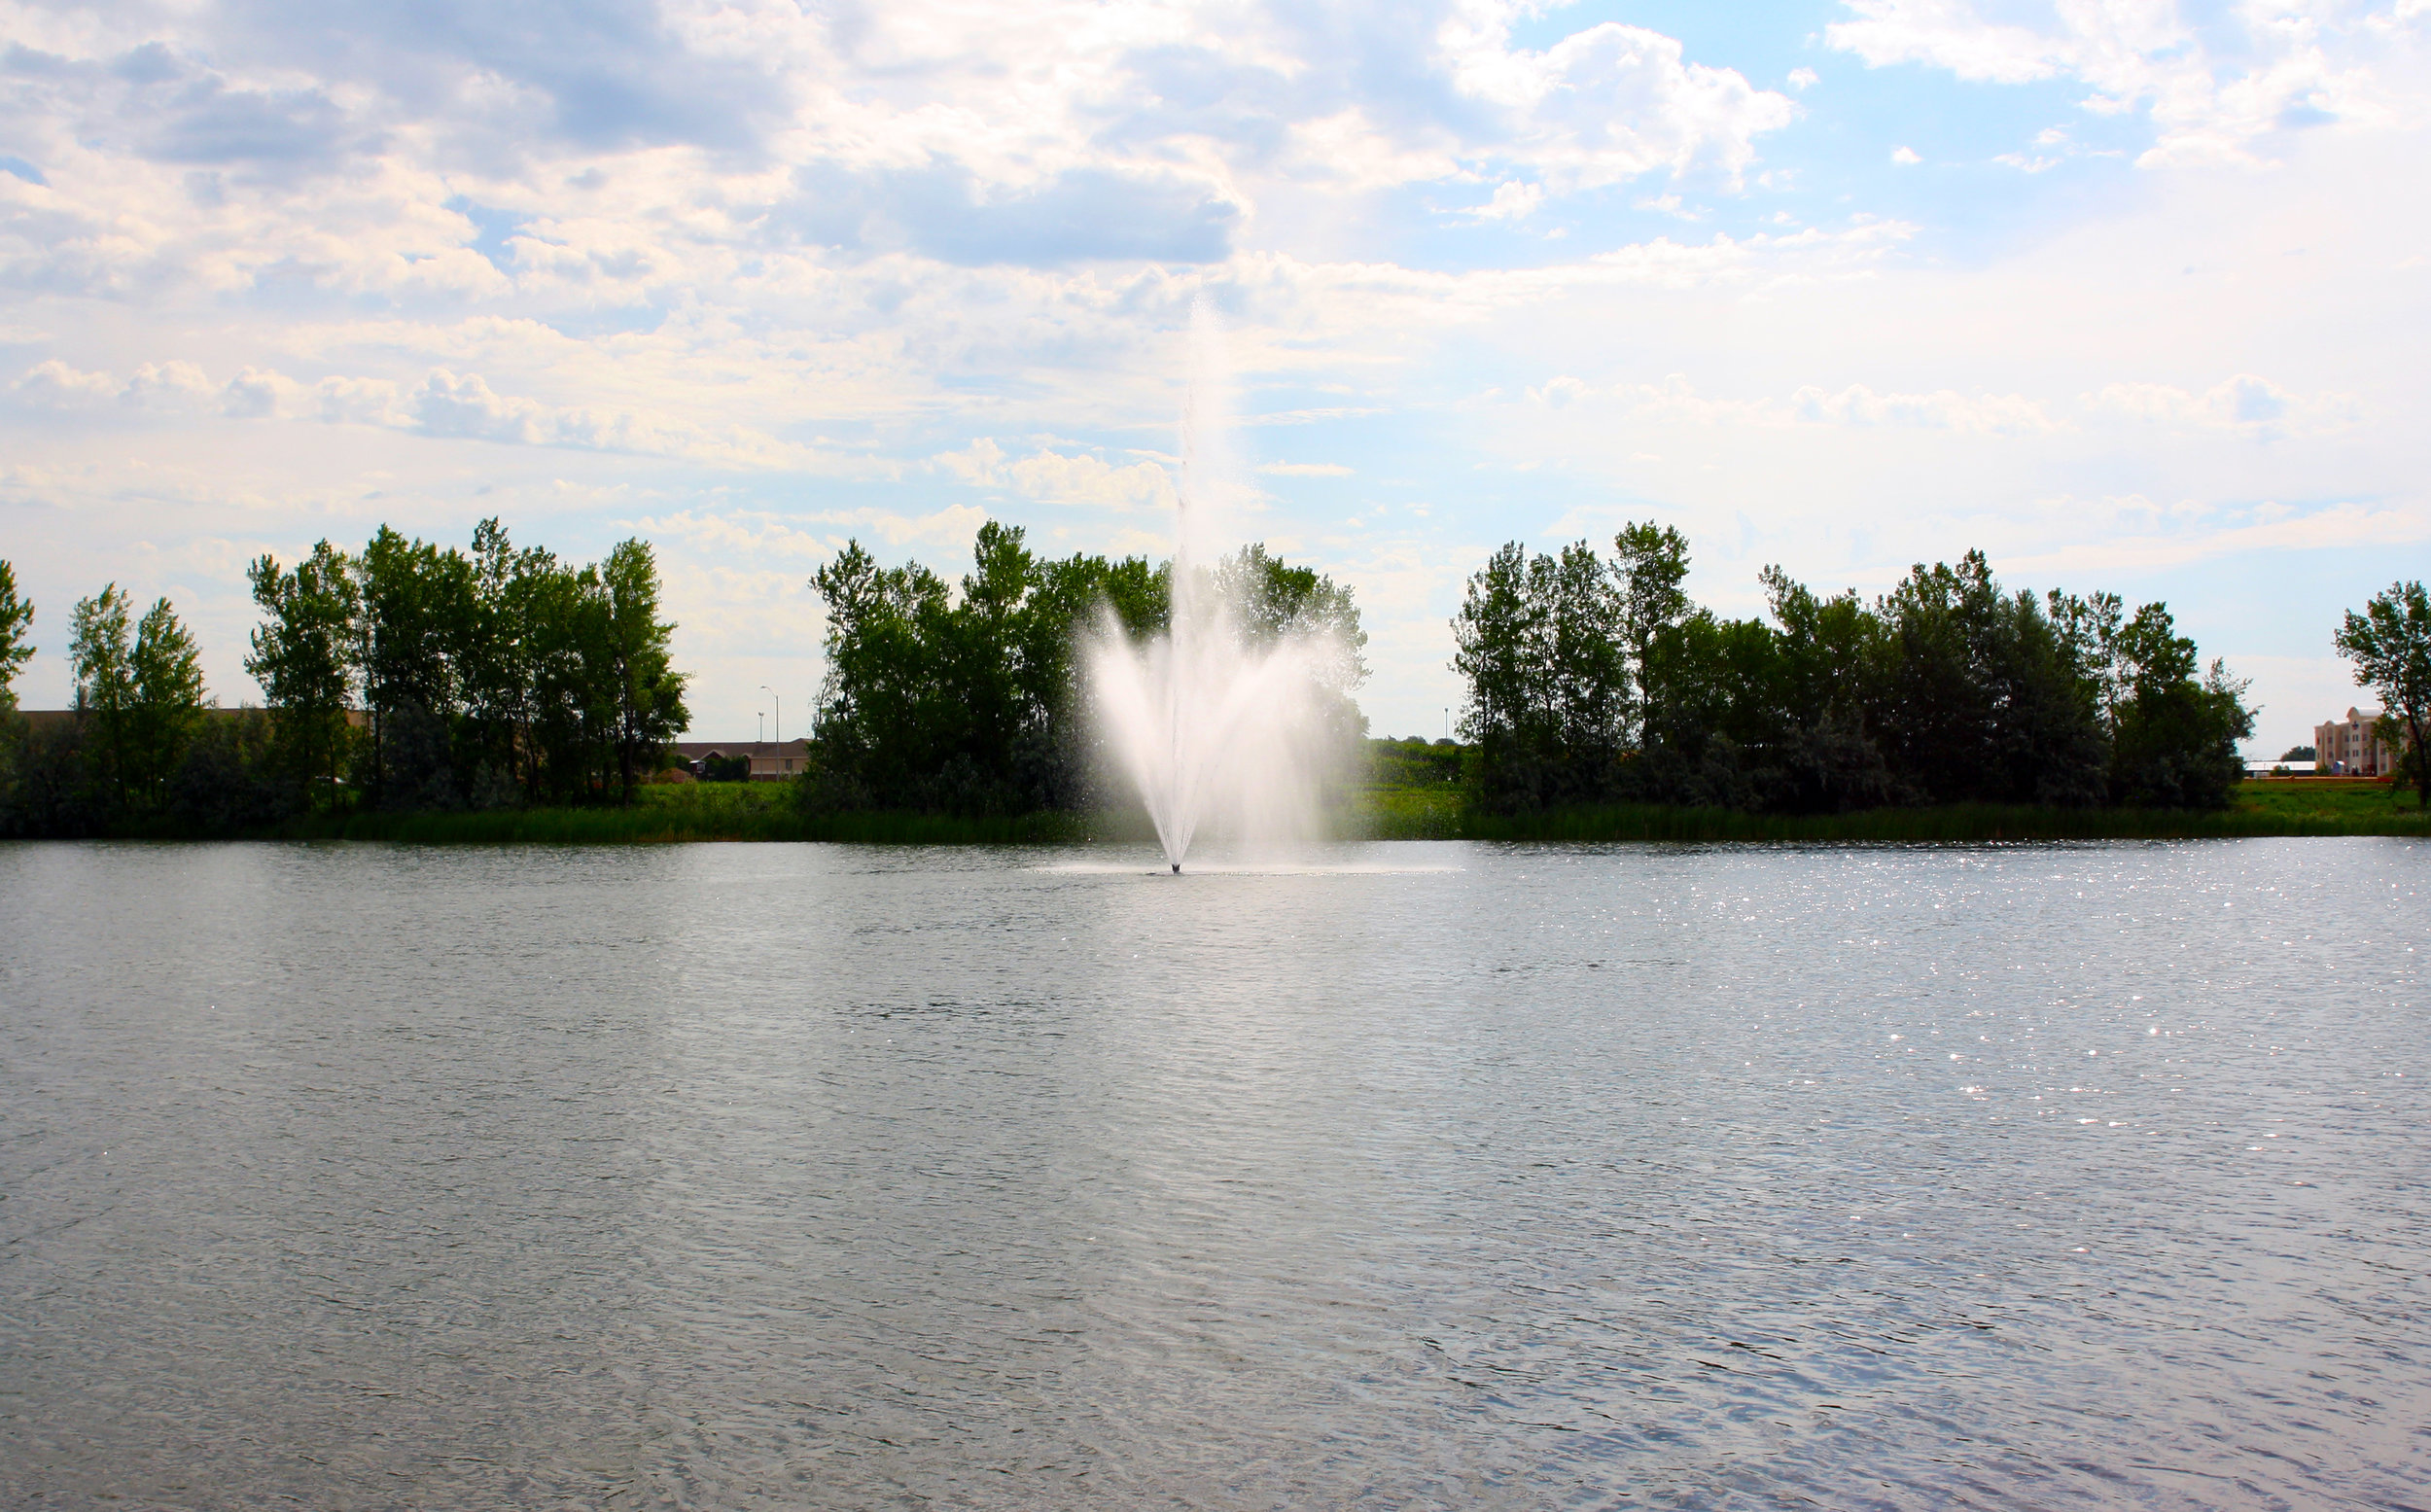 The fountain is easily seen from many points around the lake — even from W. 26th Street, just west of Interstate 29.